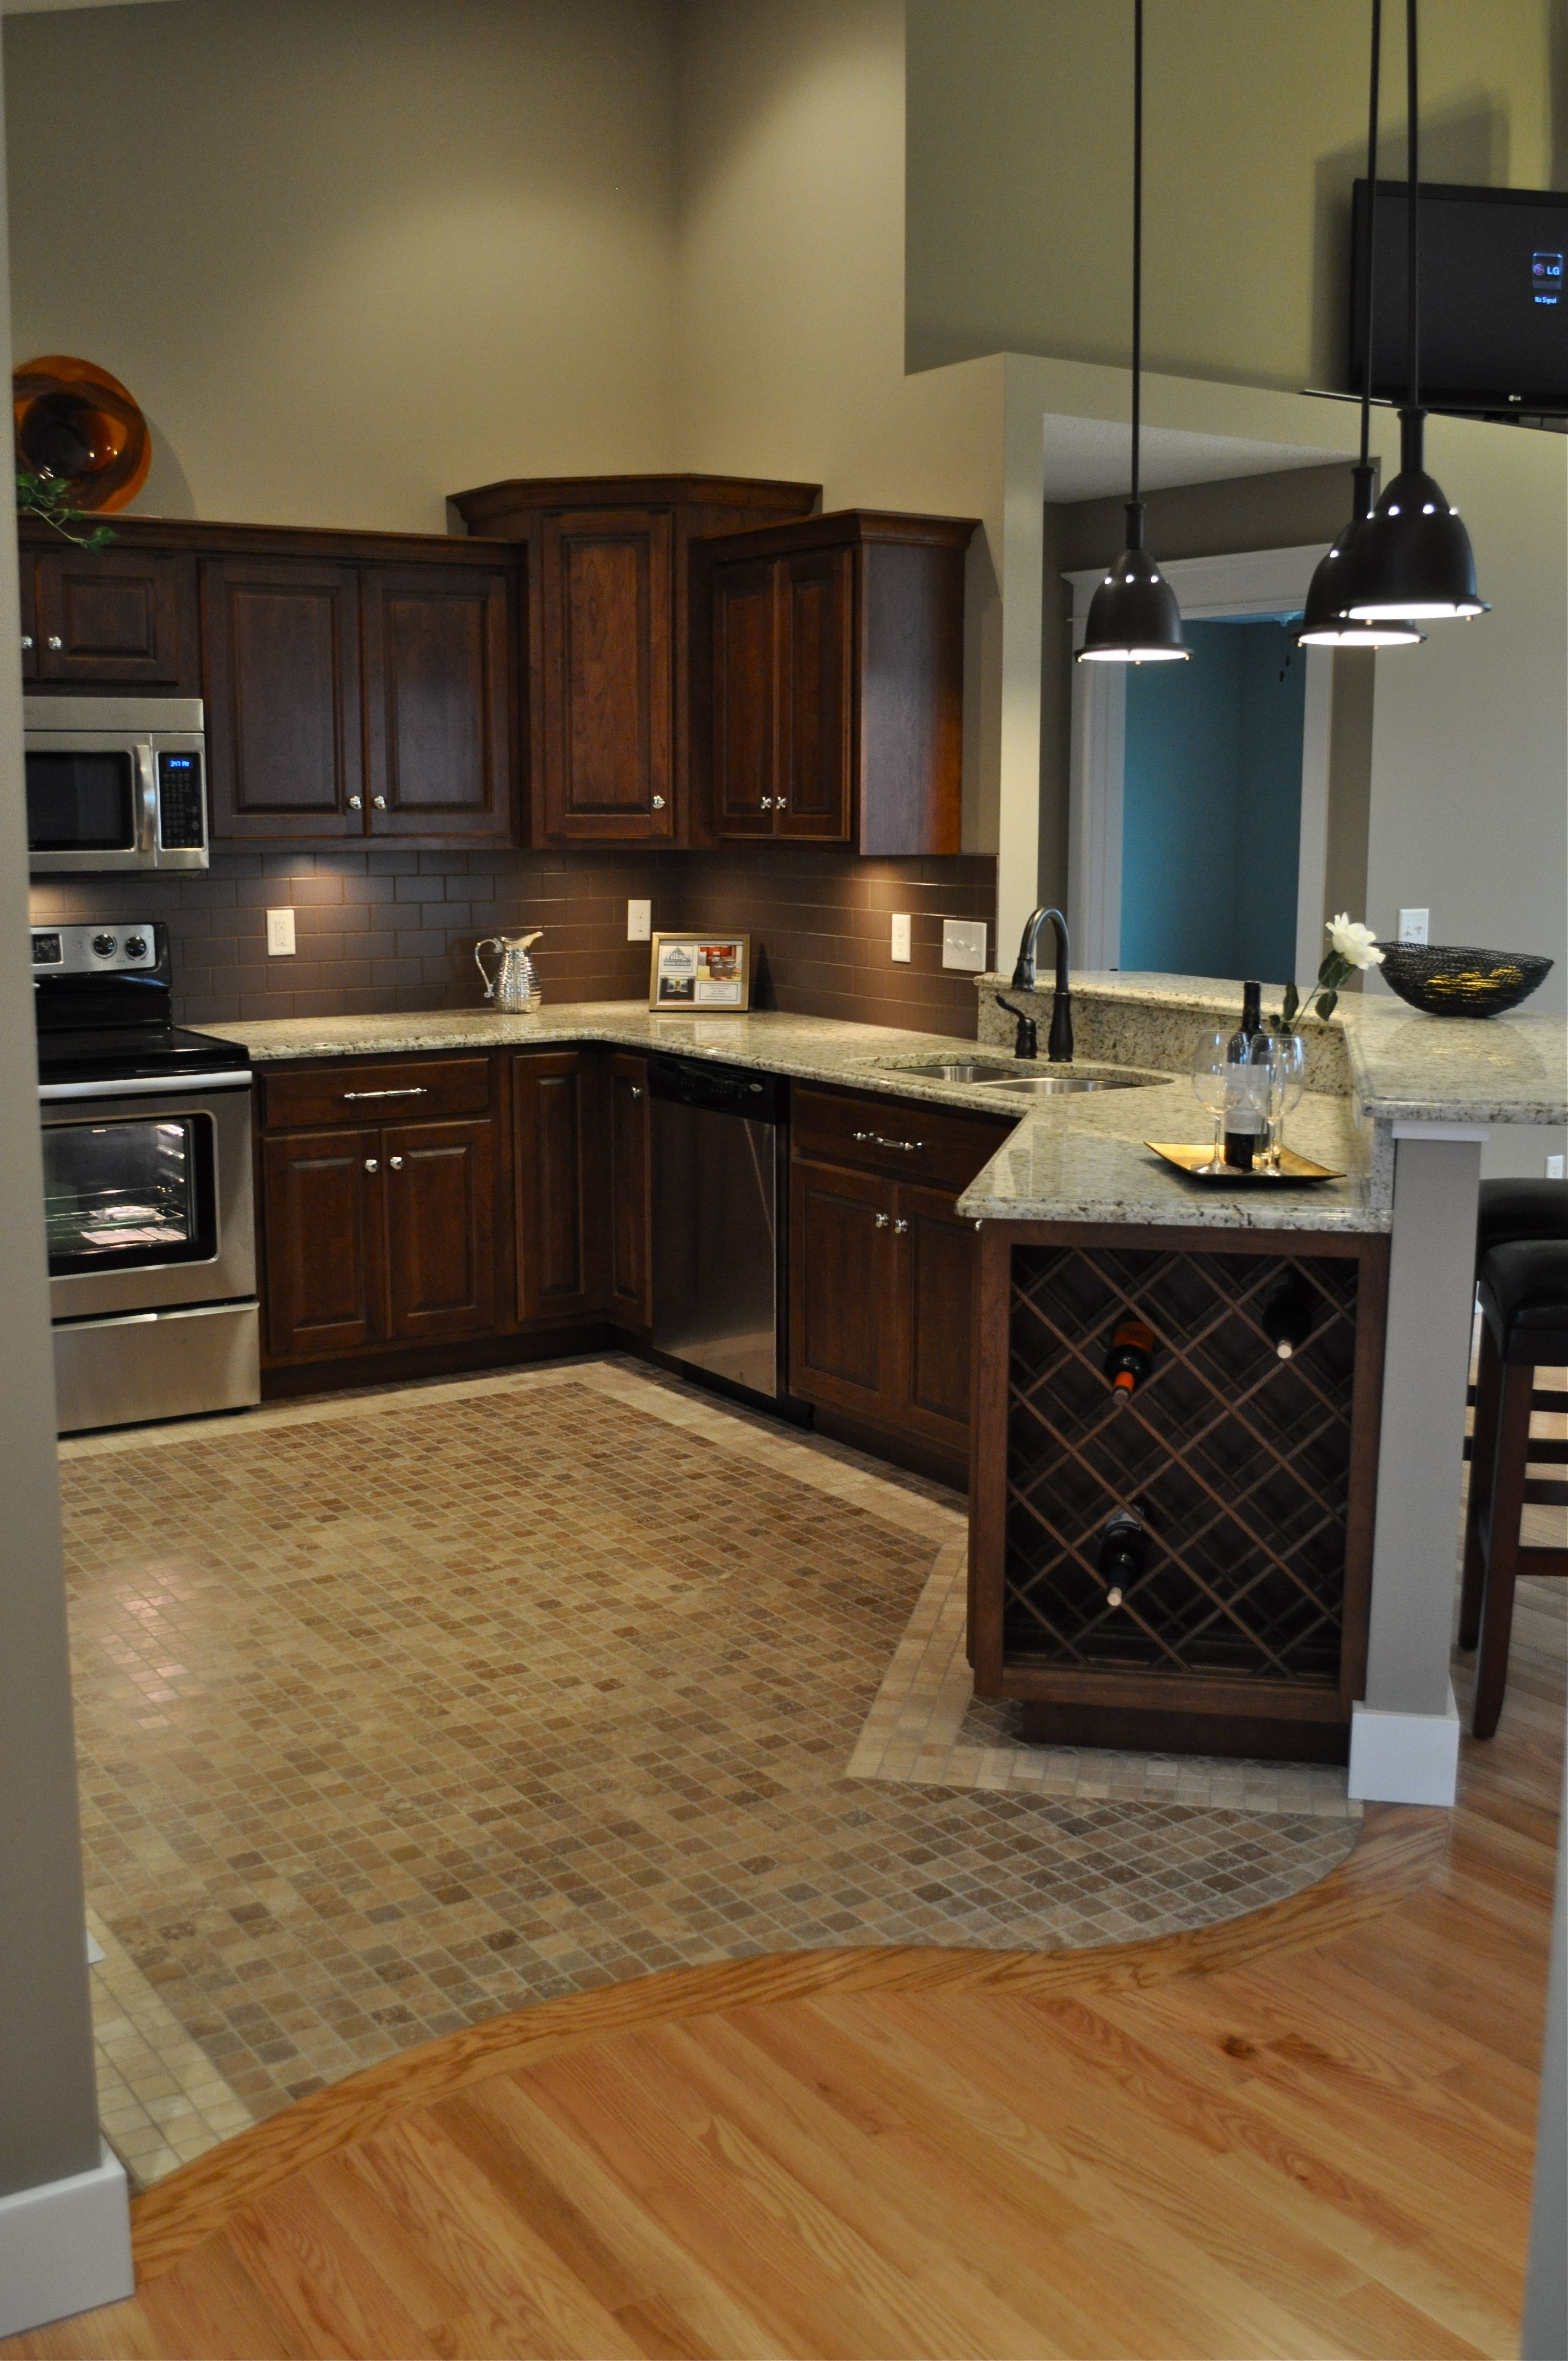 Oak hardwood floors with curved transition to mosaic travertine tile